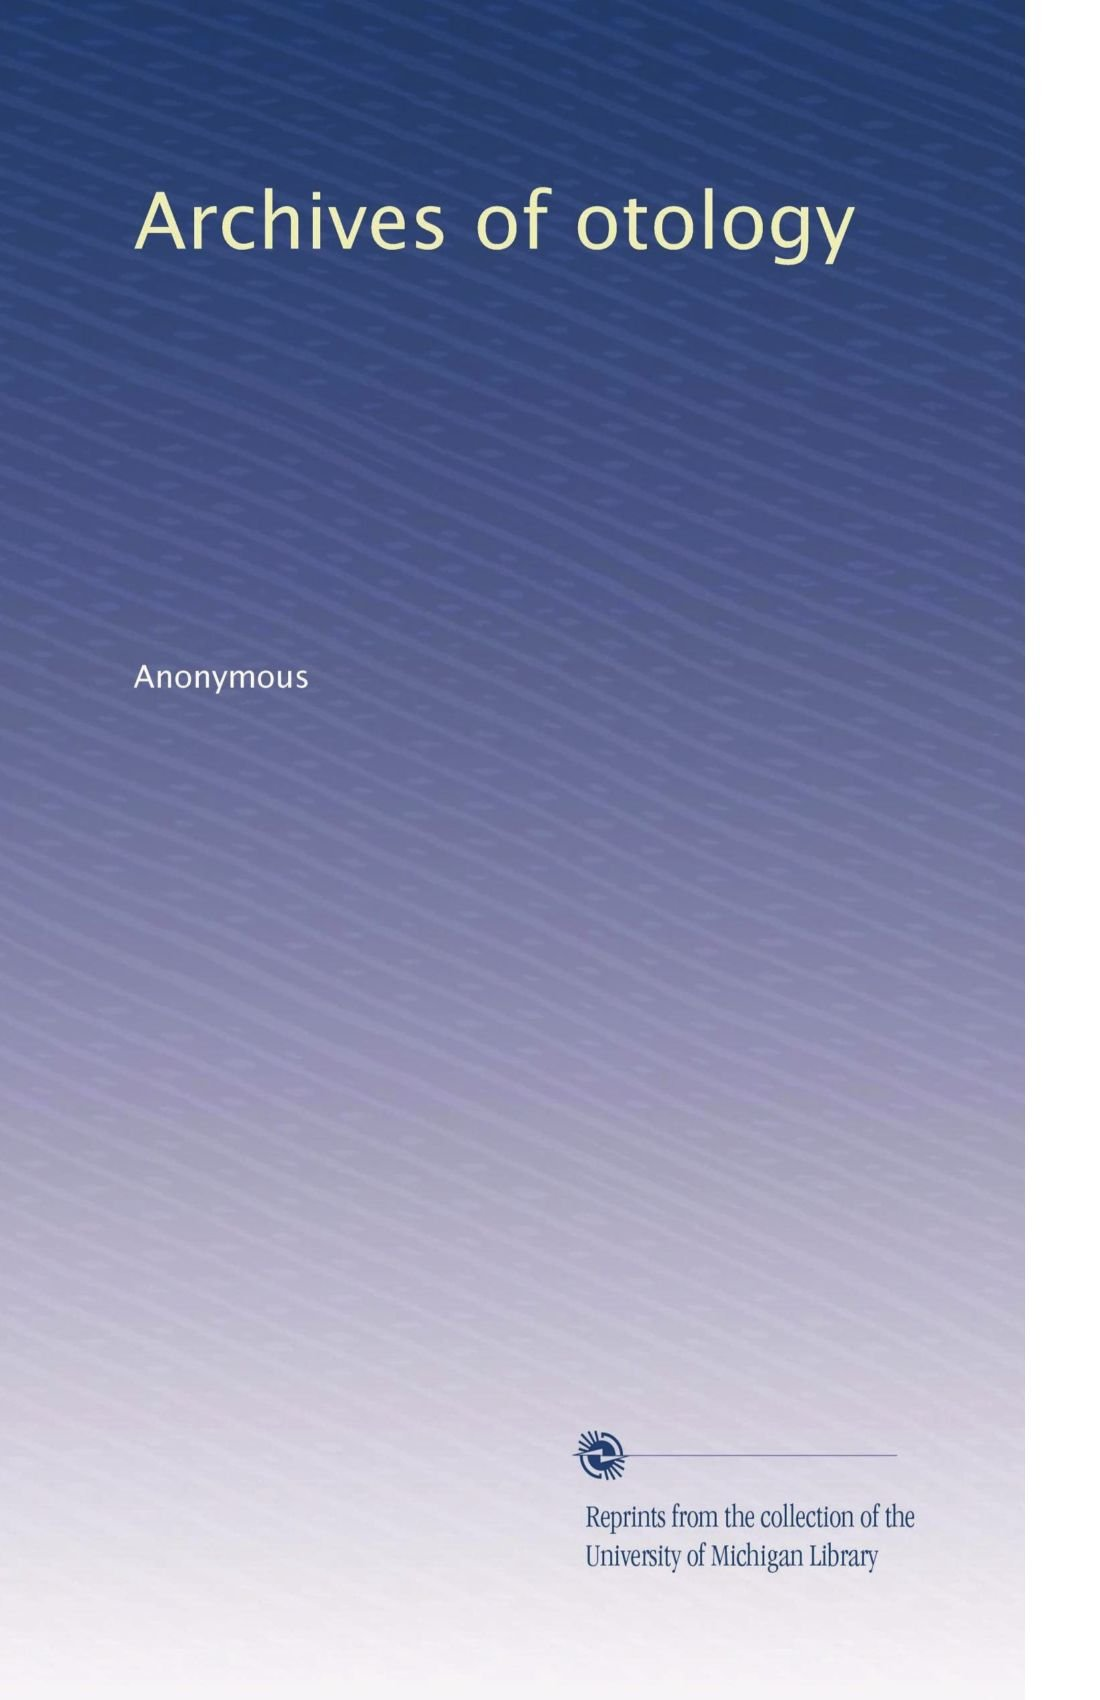 Download Archives of otology (Volume 3) pdf